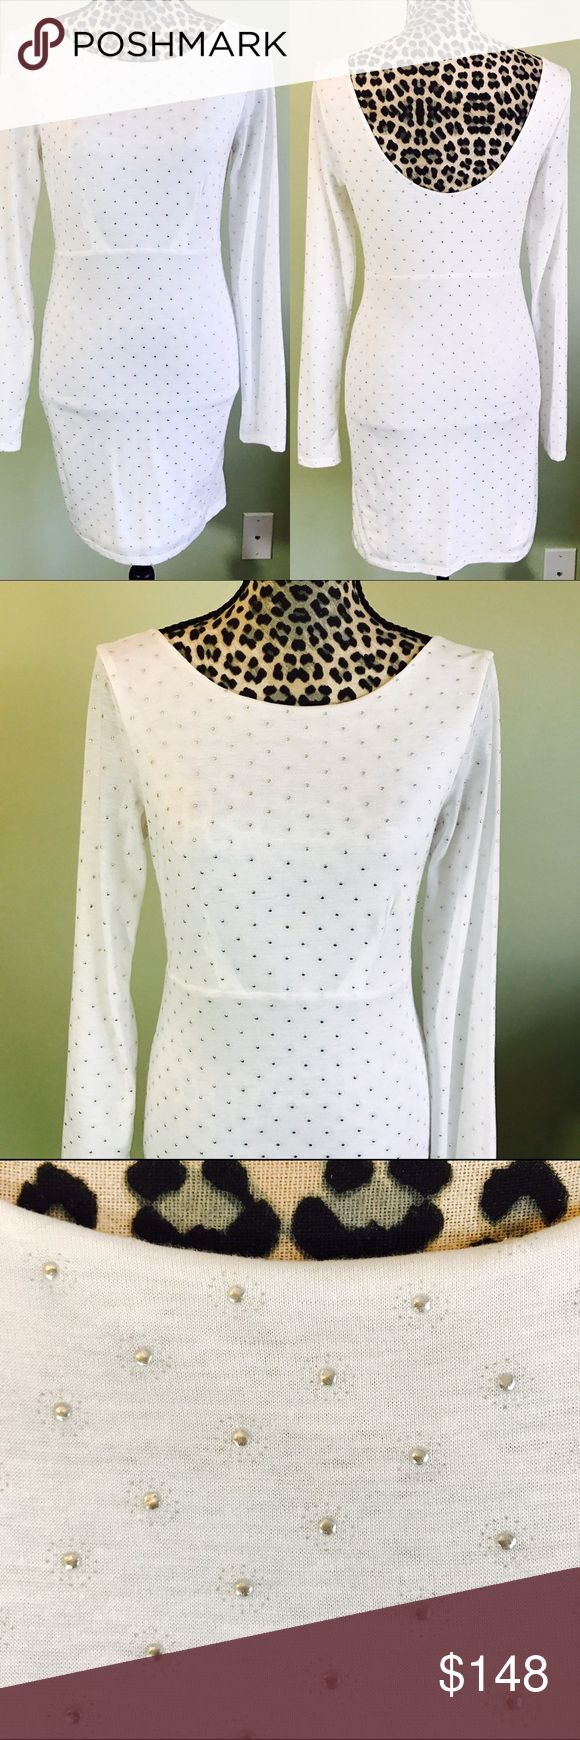 ⭐Free people white dress with embellishments Free people white dress with silver embellishments. Free People Dresses